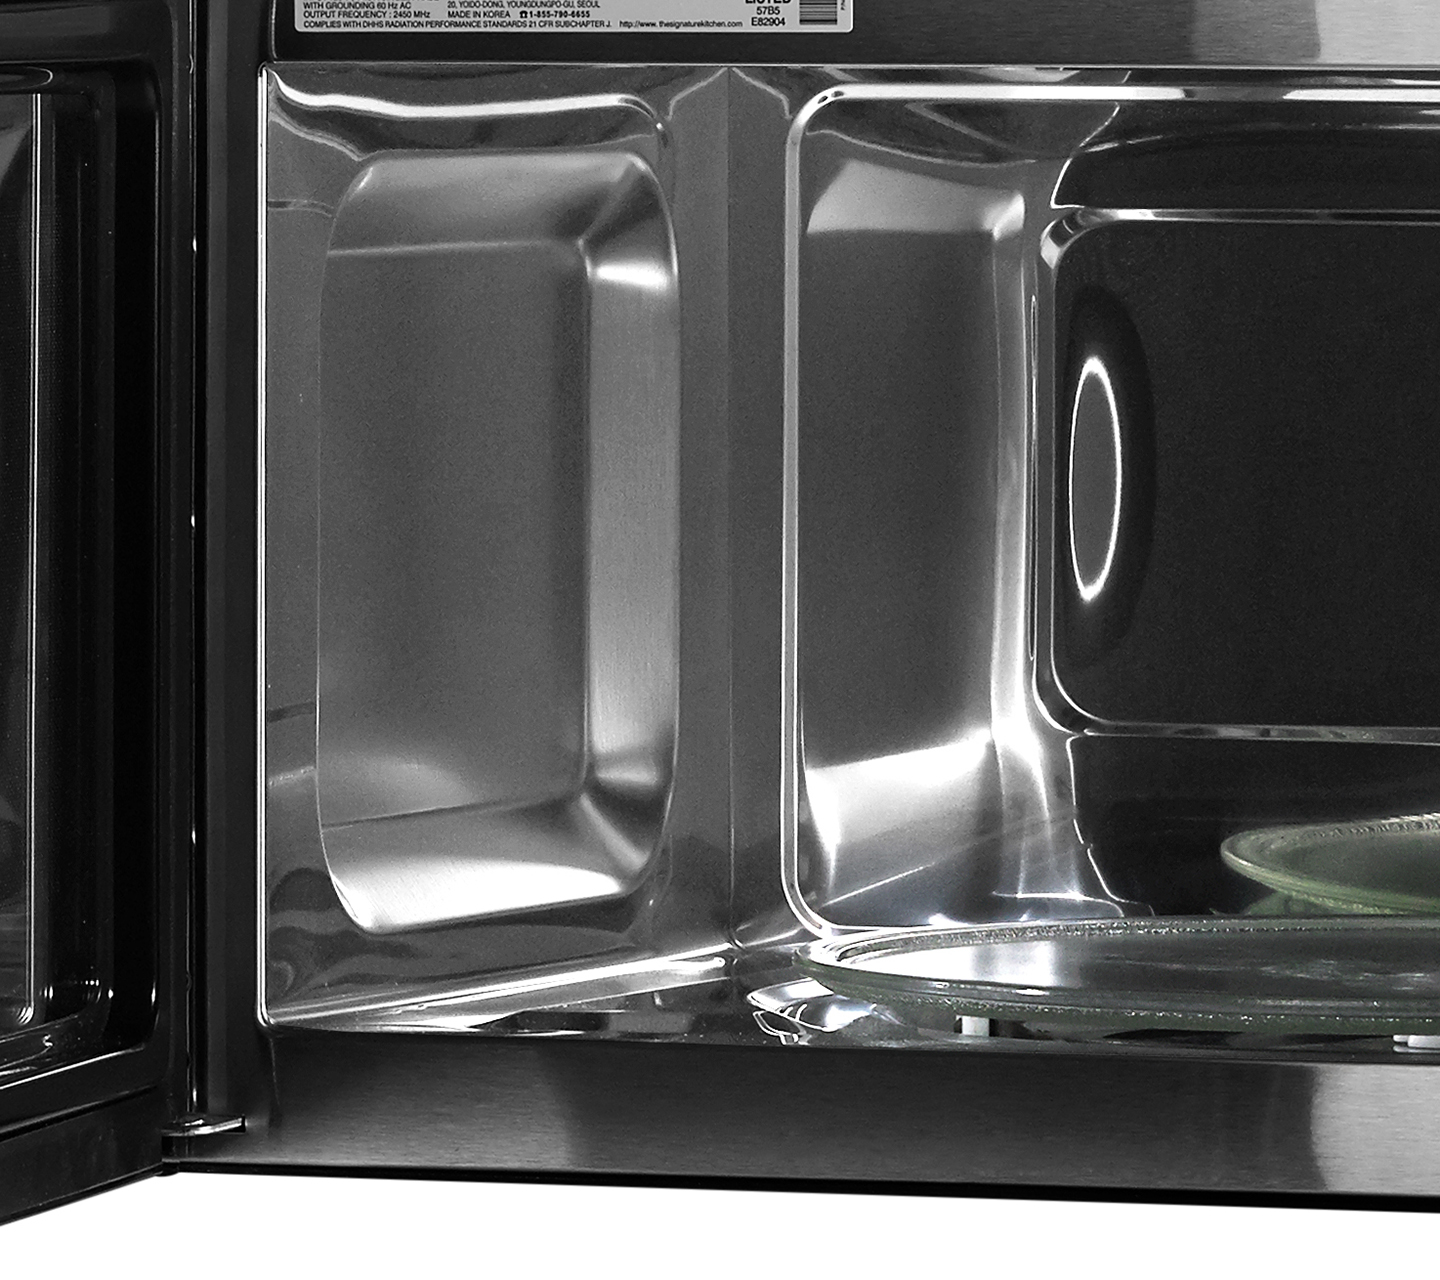 Sensor Cooking in Over the Range Microwave